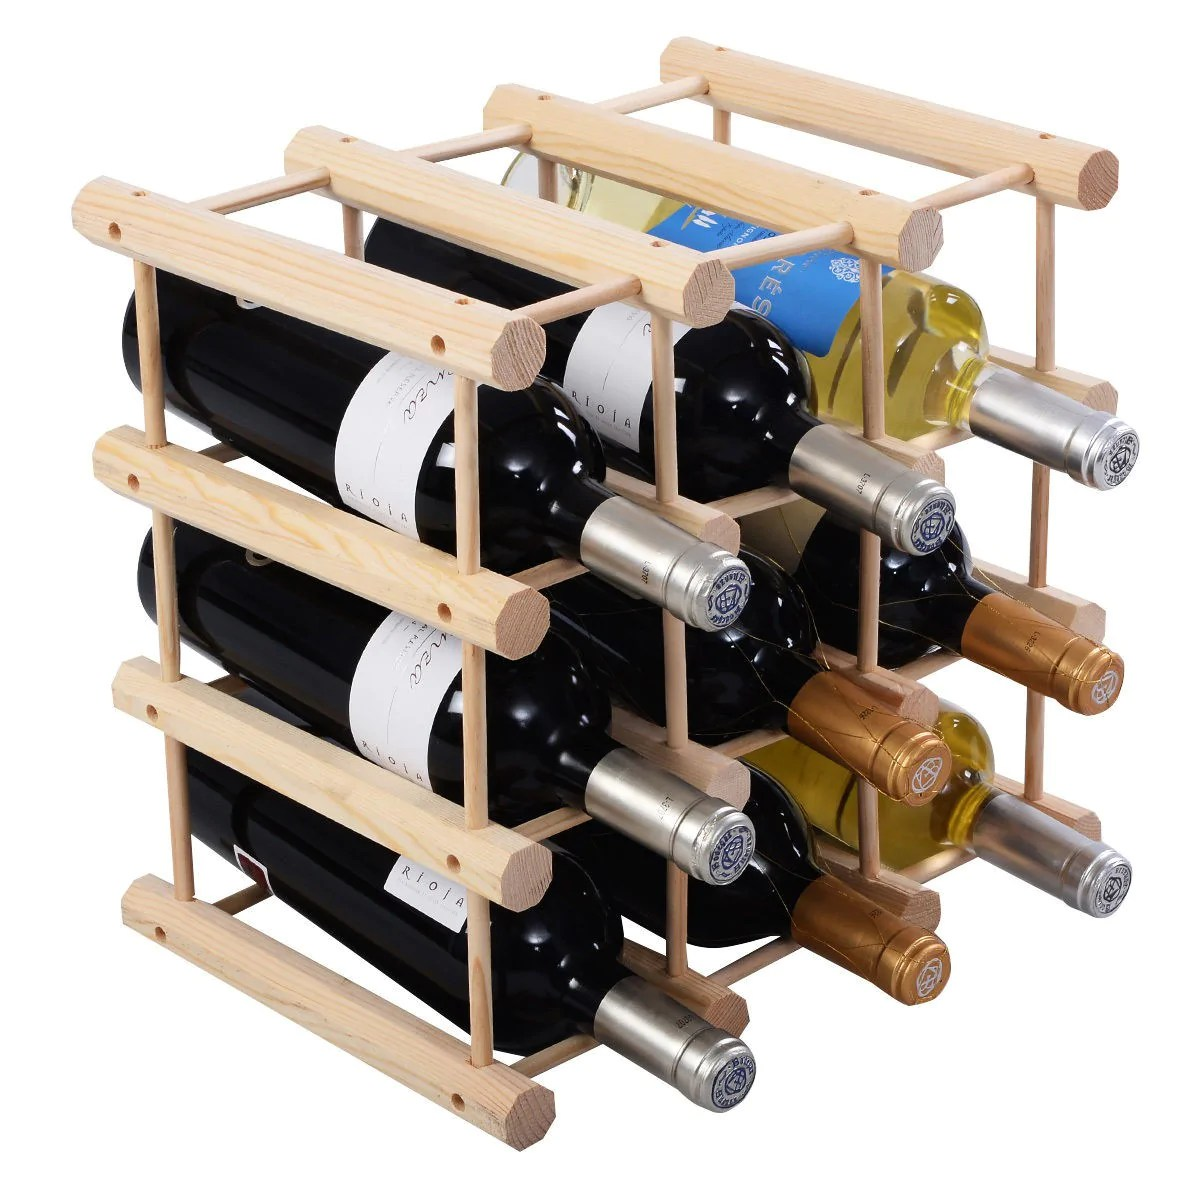 Wooden Bottle Rack Wooden Bottle Rack Wine Holder For 12 Bottles